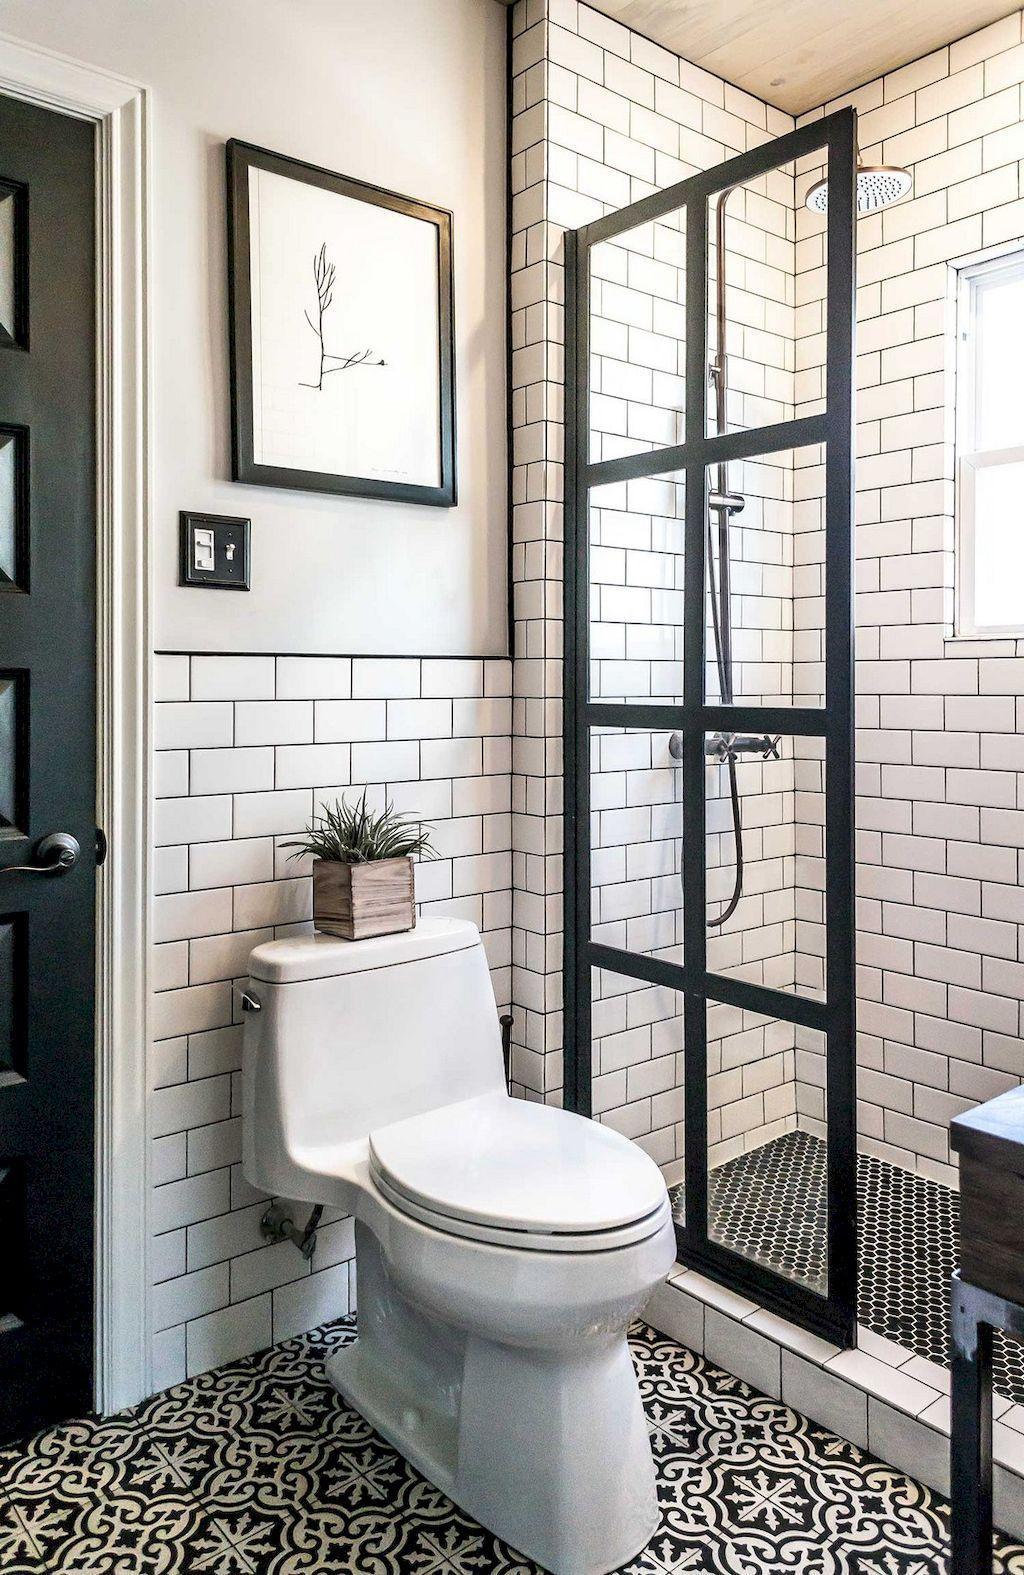 Cool small master bathroom remodel ideas (1) | Interior and exterior ...